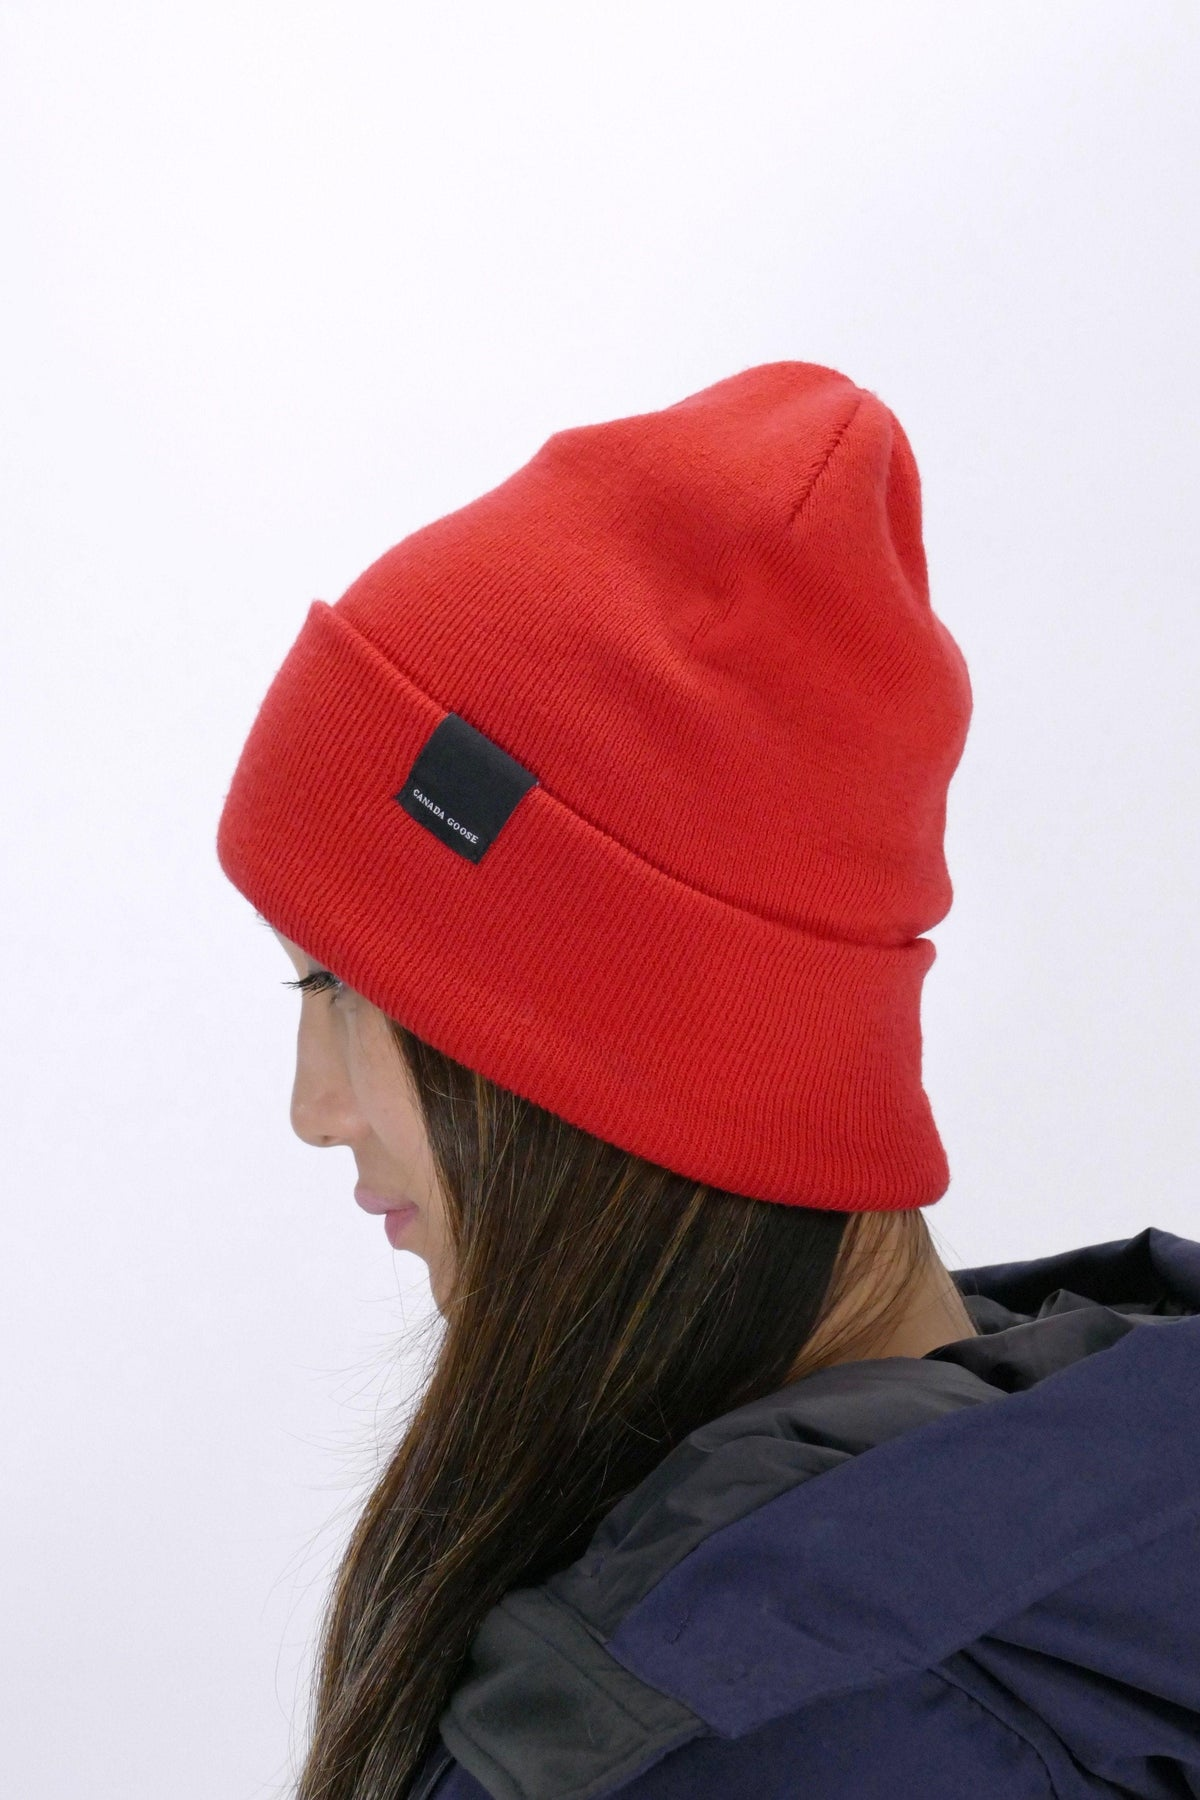 Canada Goose Womens Winter Accessories - Hats - Ranger Toque - Red